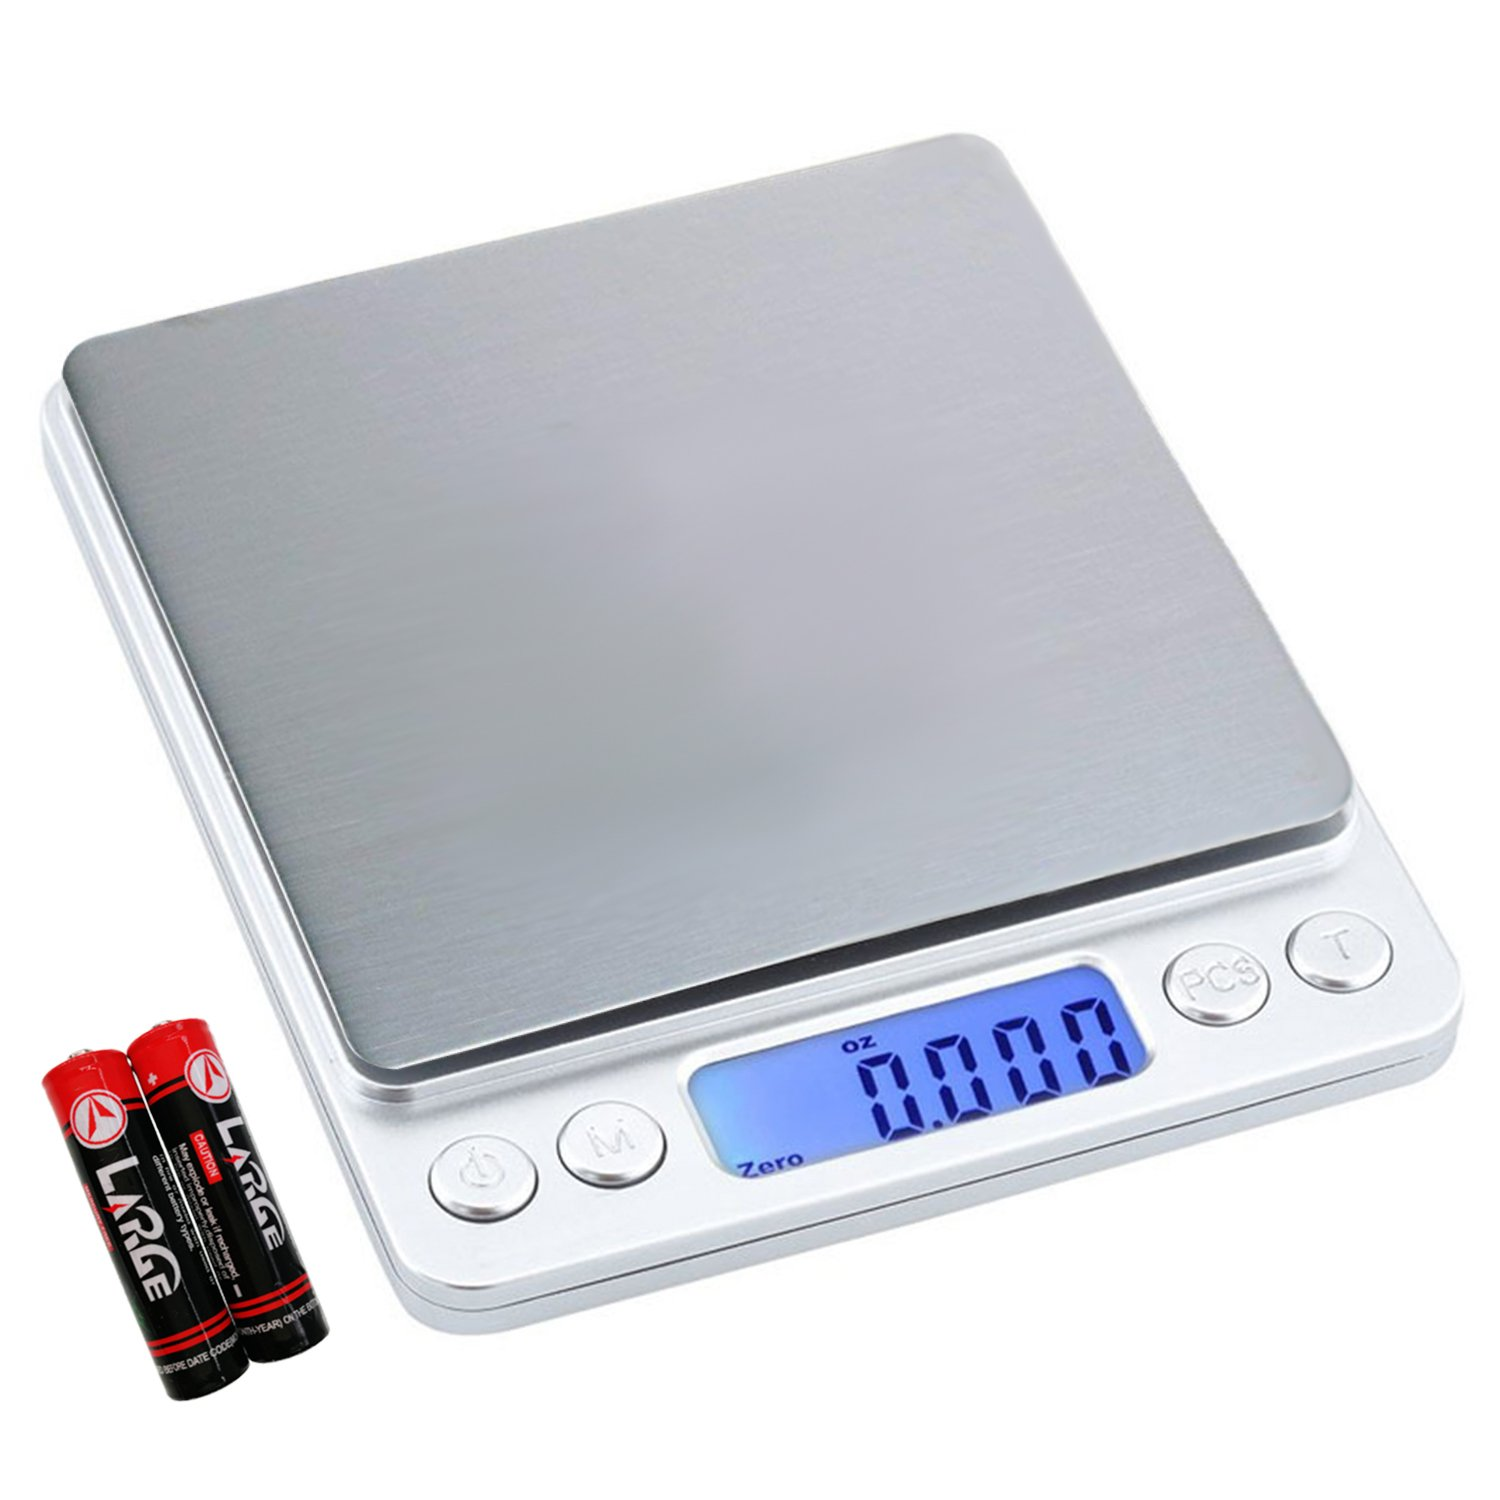 Digital Kitchen Scale Multifunction Food Scale, 500g/0.01g by Wecolor